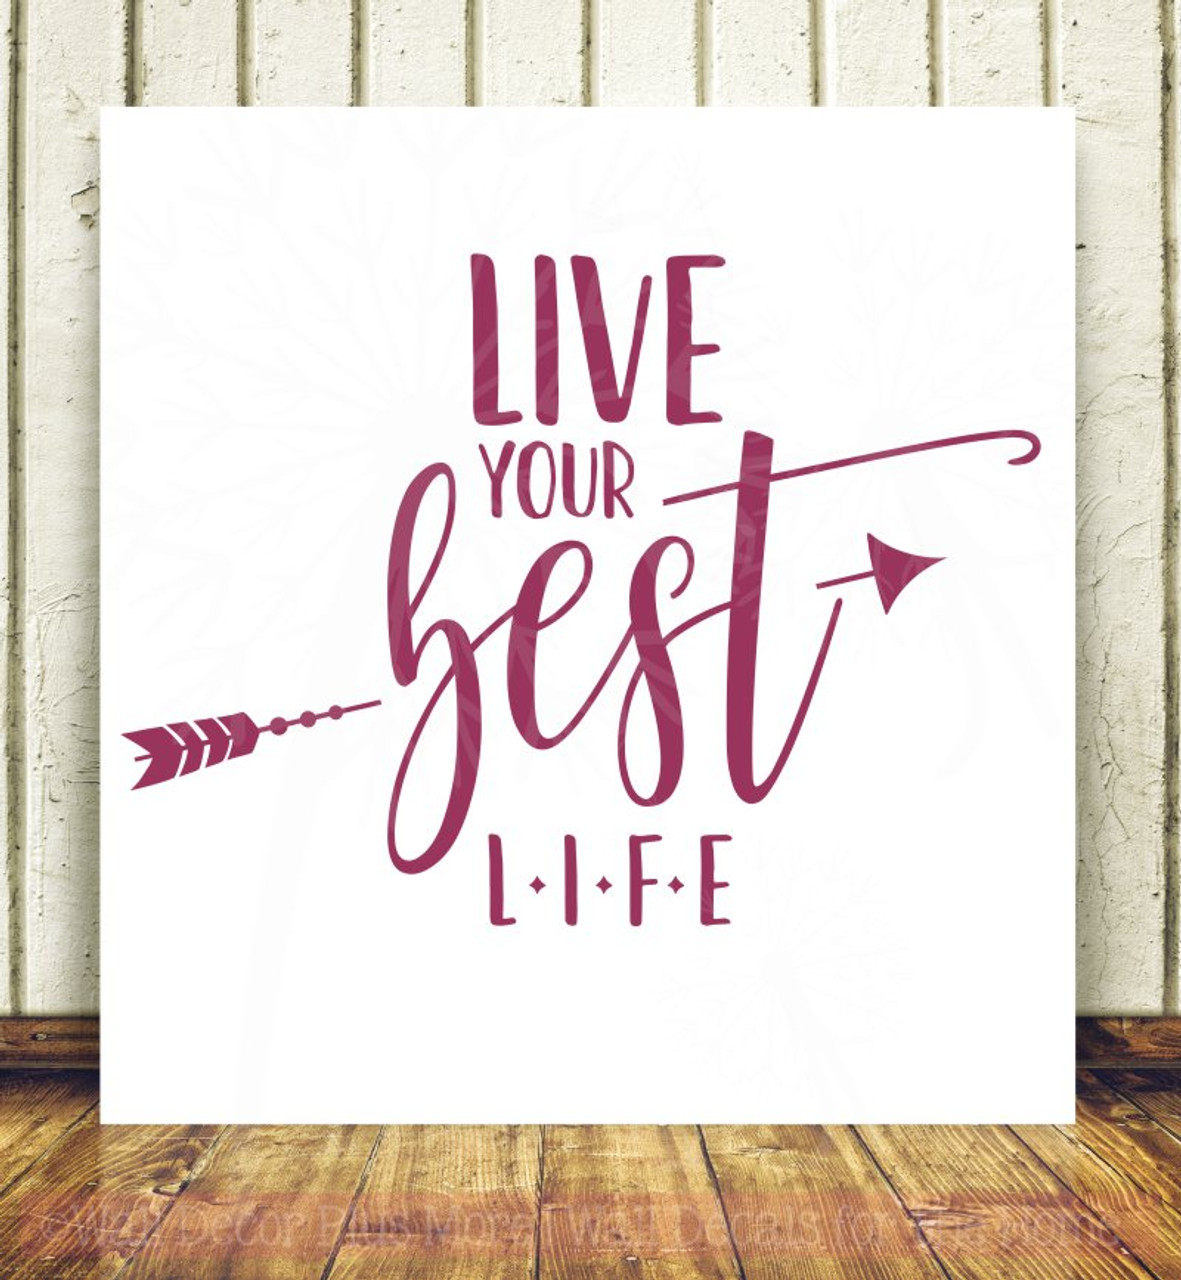 Us Stock Live Quote: Live Your Best Life Inspirational Wall Quote Stickers